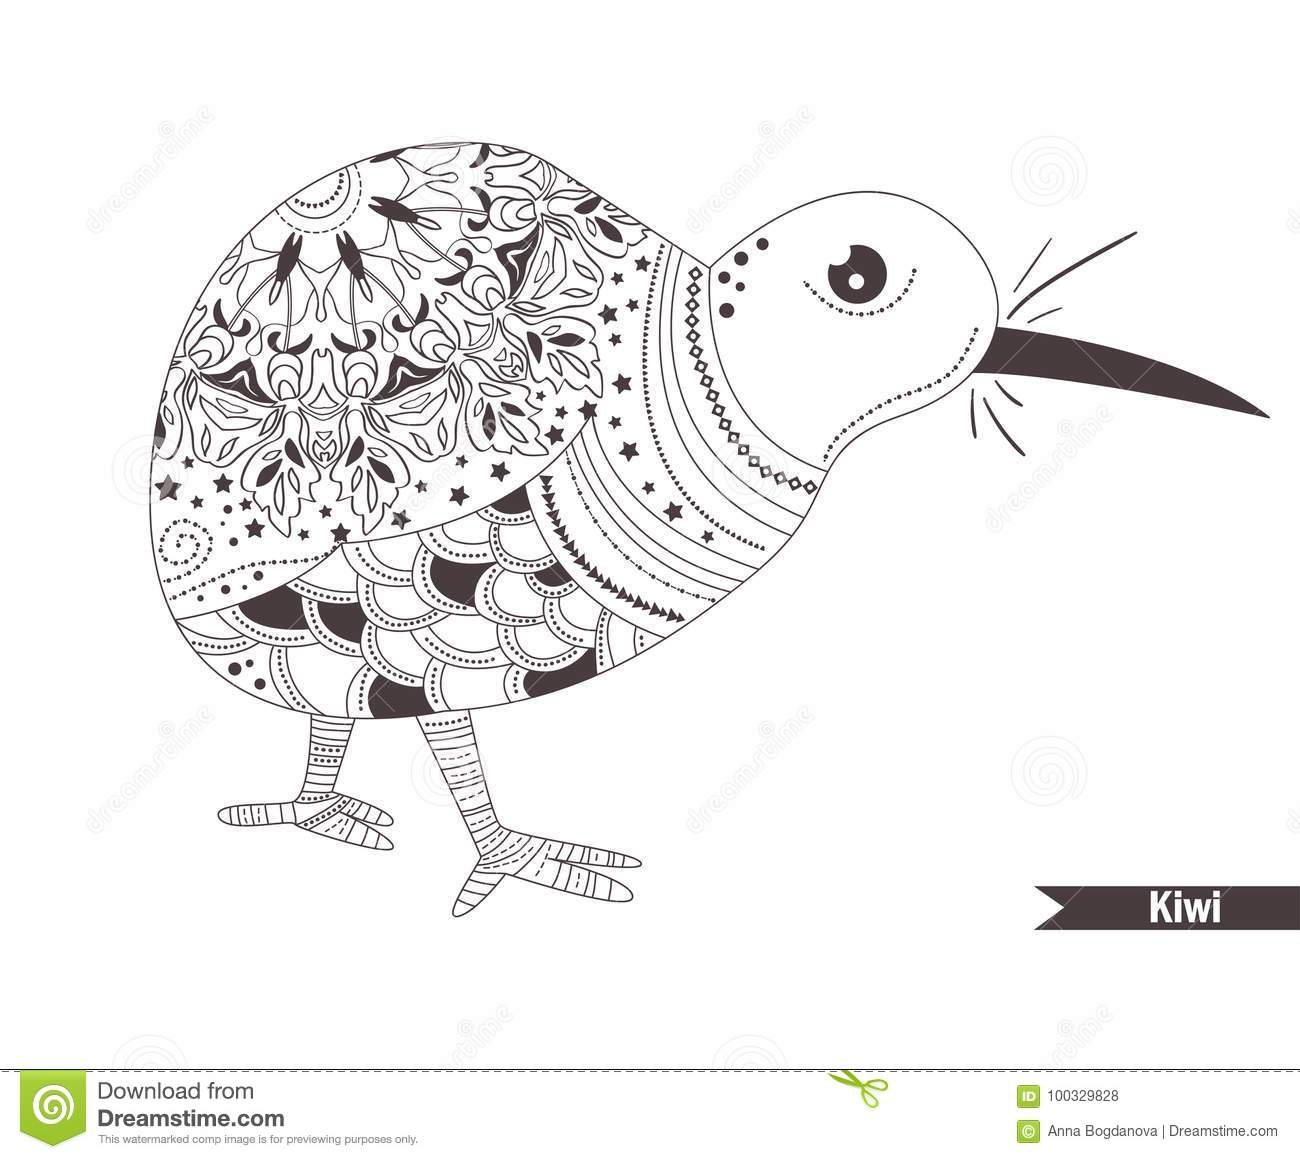 Kiwi zentangle style coloring book for adult antistress coloring pages hand drawn vector isolated illustration on white background